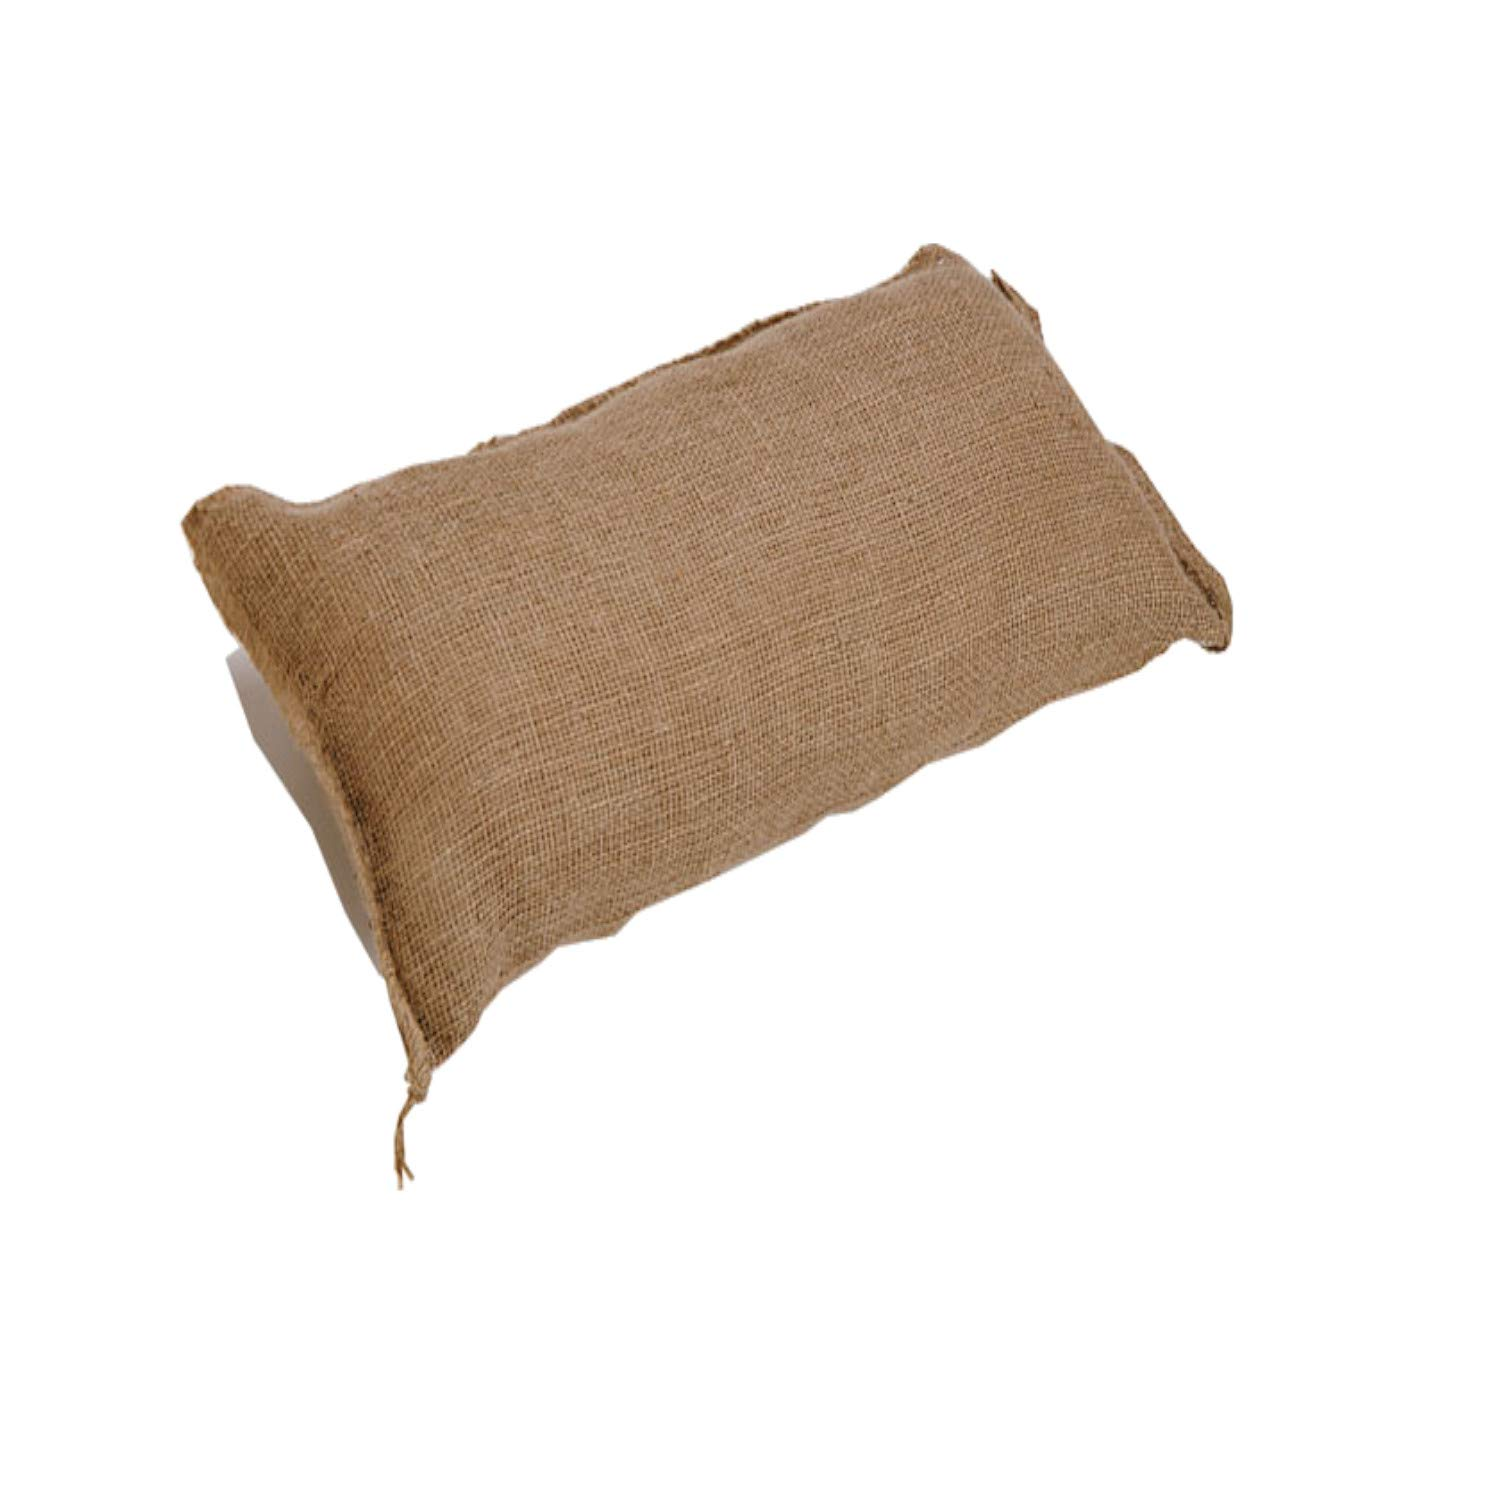 Pack of 10 Yuzet Hessian Sand Bags with Ties Flood Protection Sack sandbag sandbag with Ties Flooding Prevention Qty Discounts Available Military